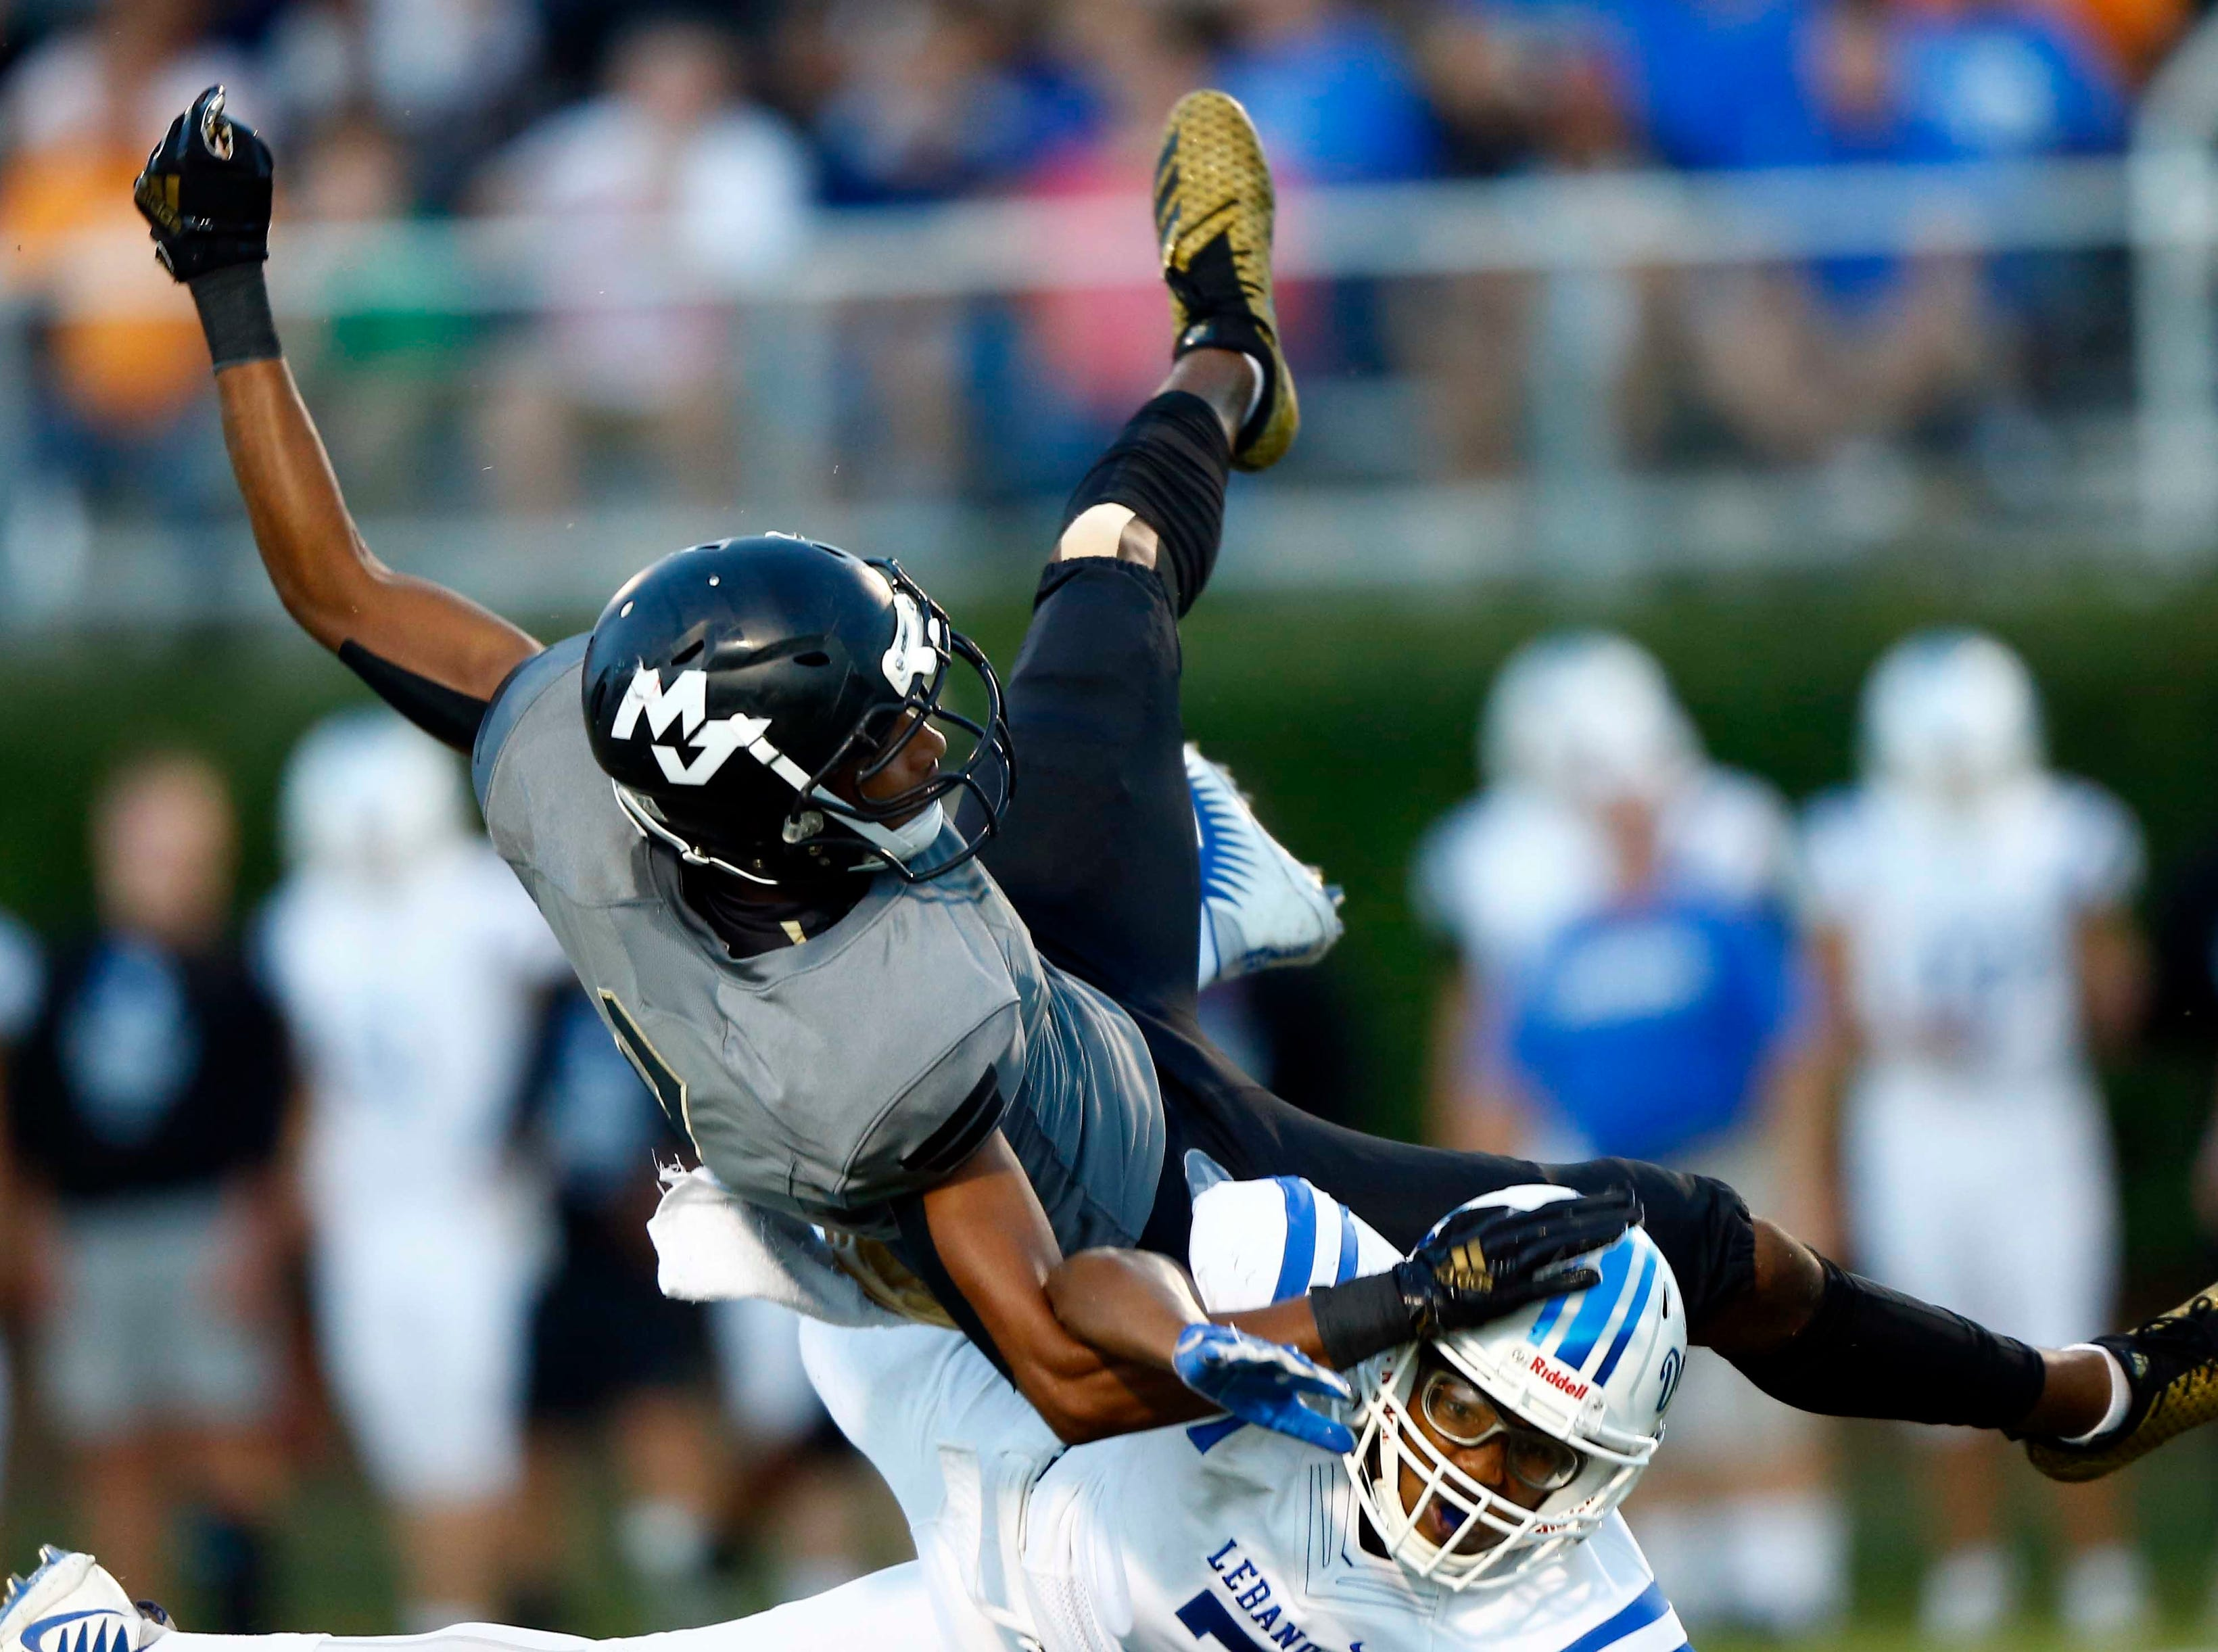 Mt. Juliet's Malik Bowen (3) is upended by Lebanon's Nathan Green during their game Friday, Aug. 31, 2018, in Mt. Juliet, Tenn. Bowen intercepted the ball on the play.